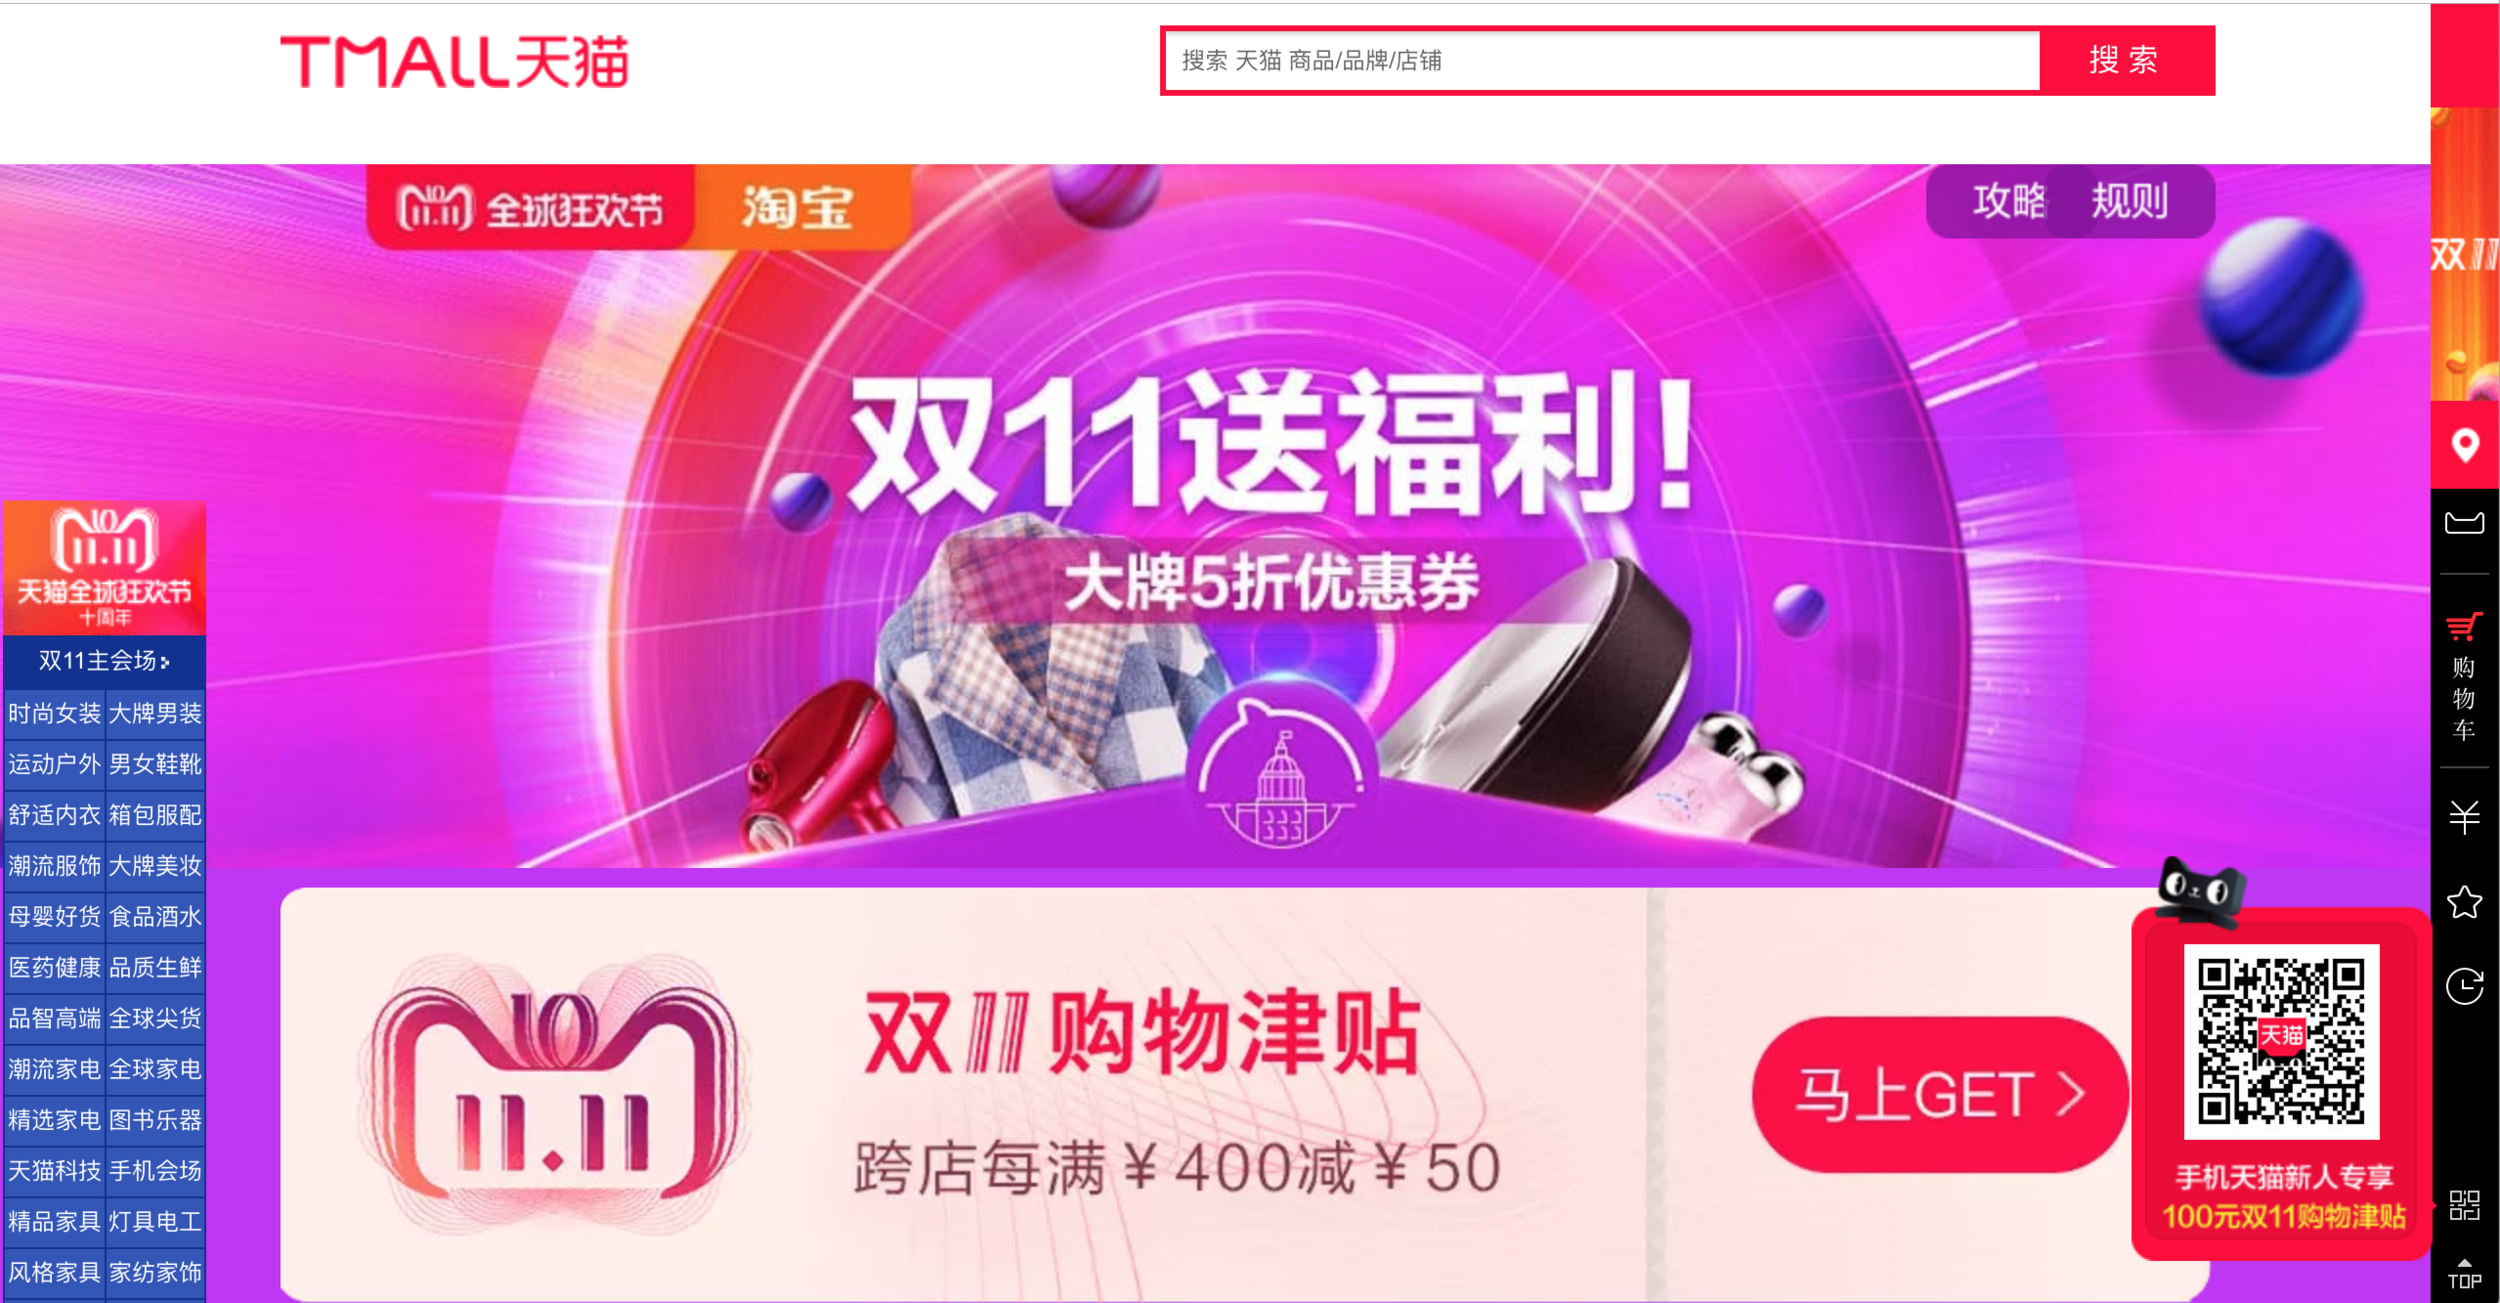 The special  11.11 site  on Alibaba's T-mall.